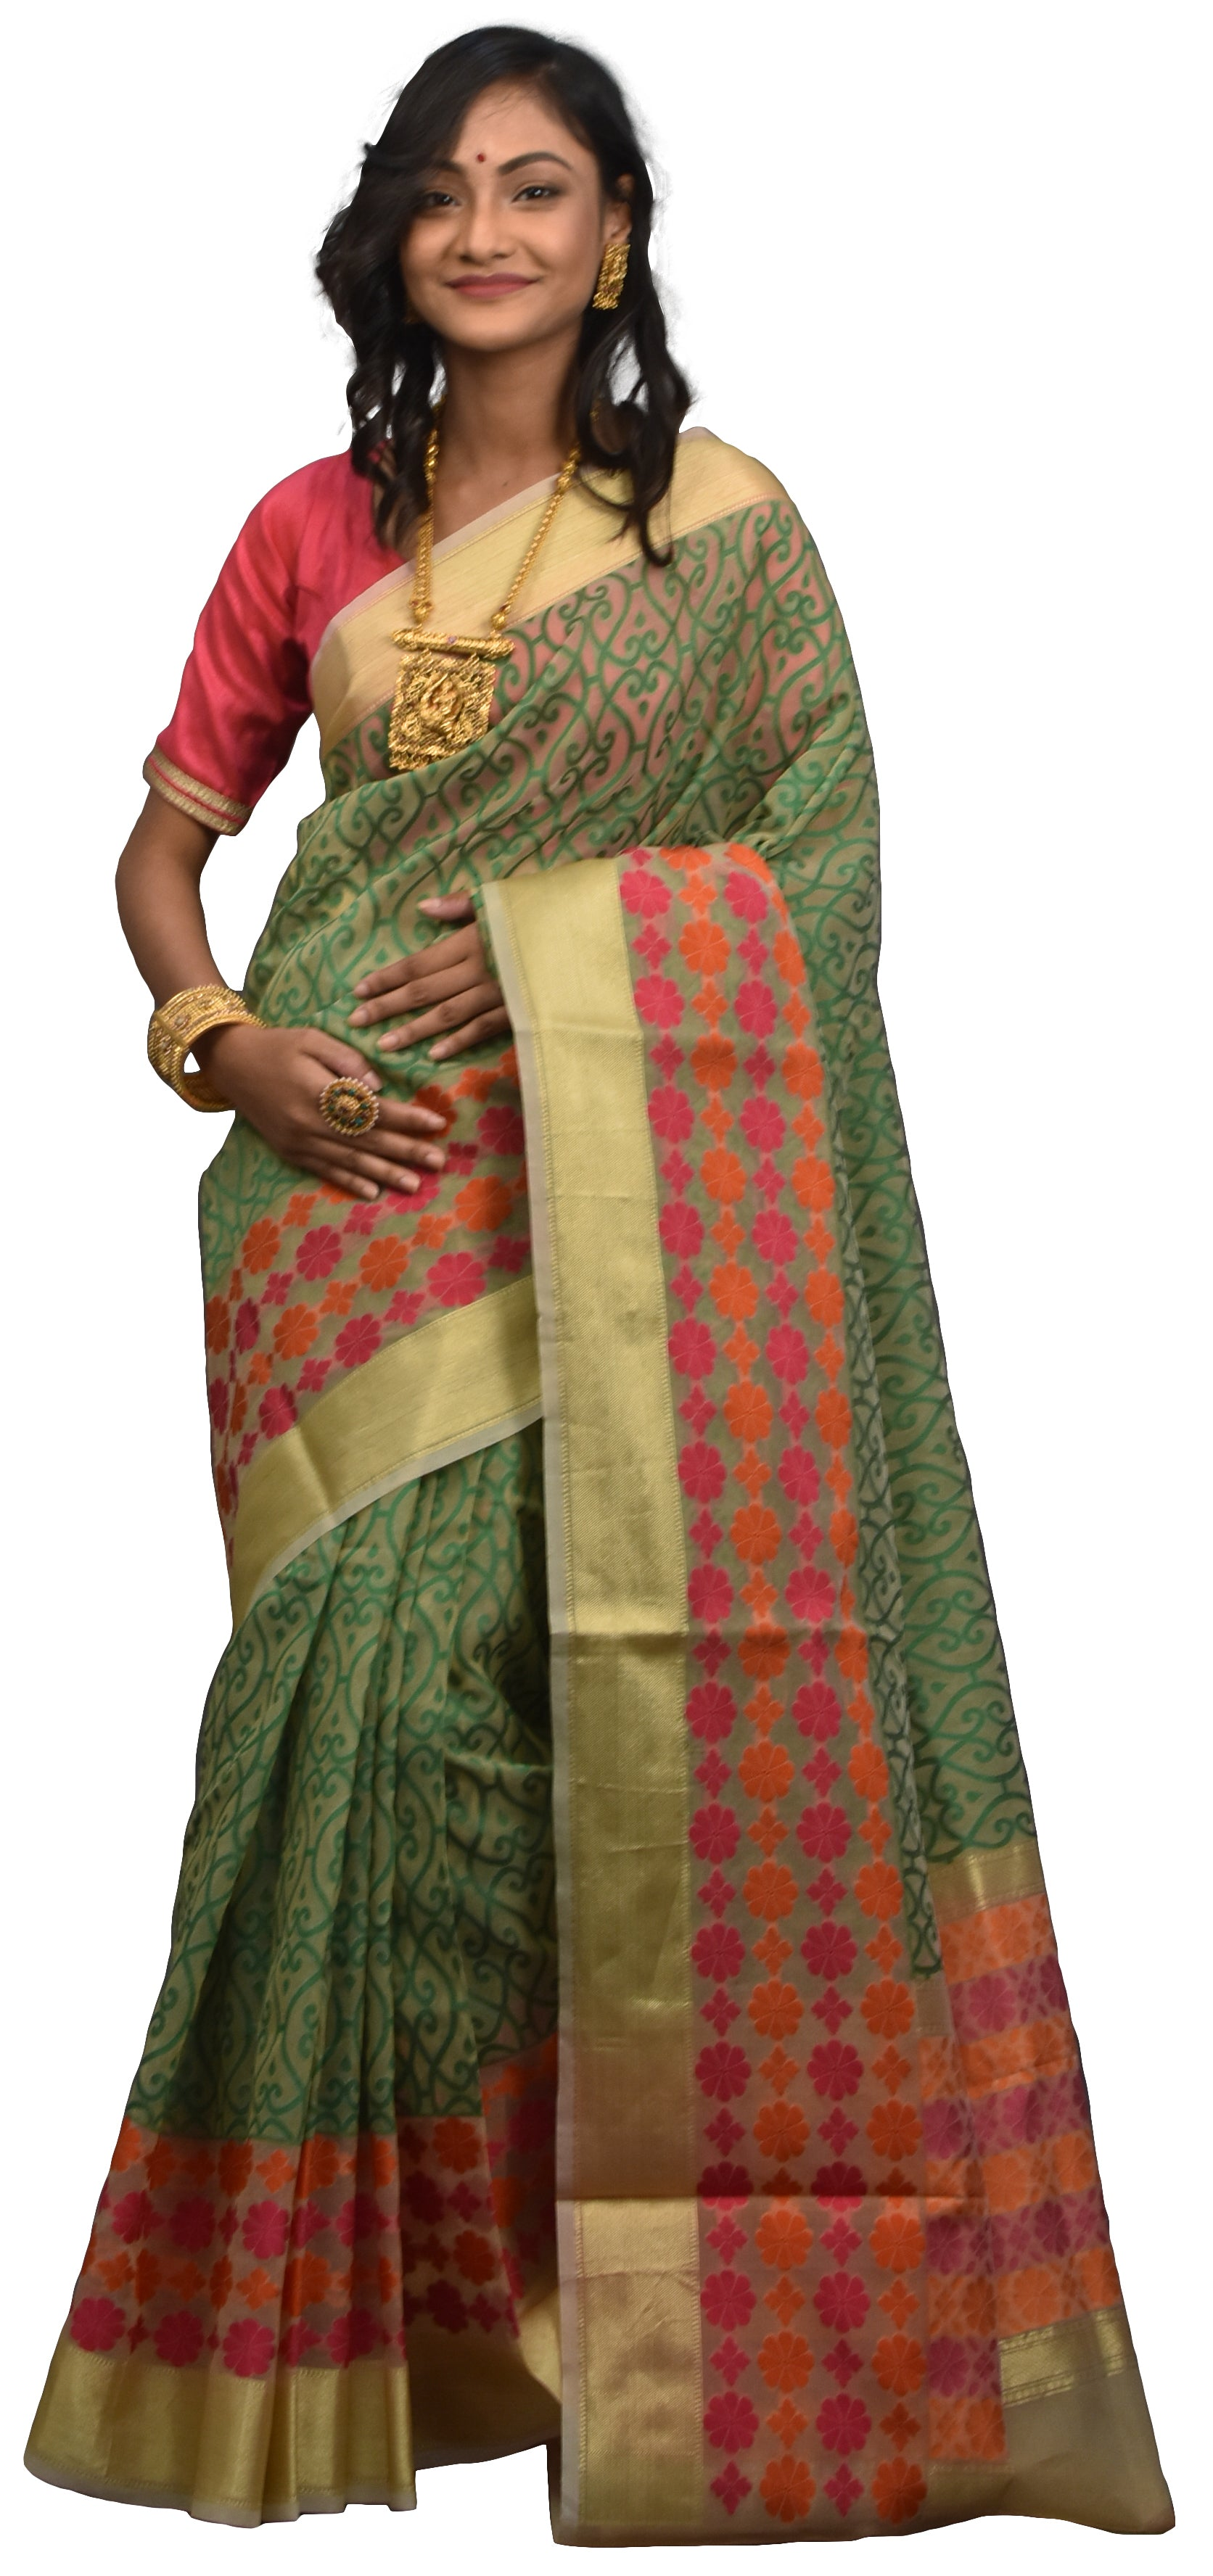 Beige & GreenTraditional Designer Wedding Hand Weaven Pure Benarasi Zari Work Saree Sari With Blouse BH10G